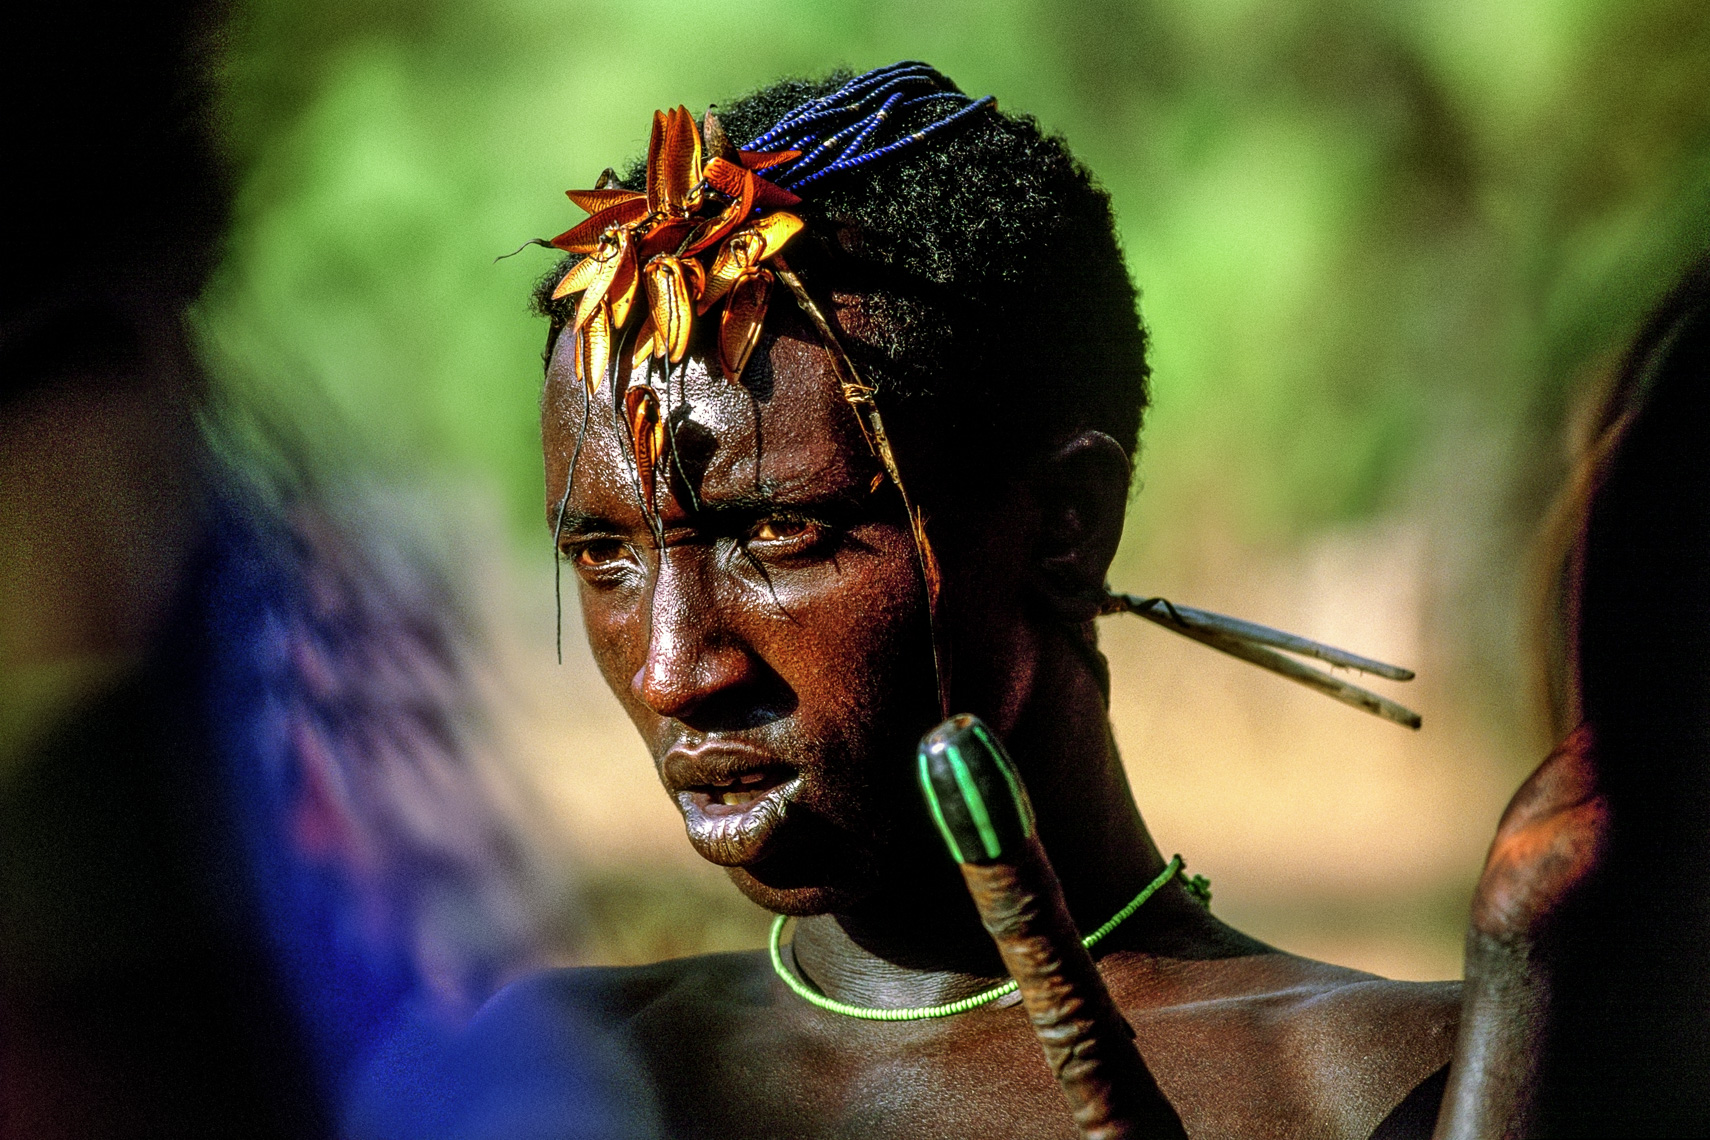 Samburu Initiate with Beetle Wing Adornments, Kenya